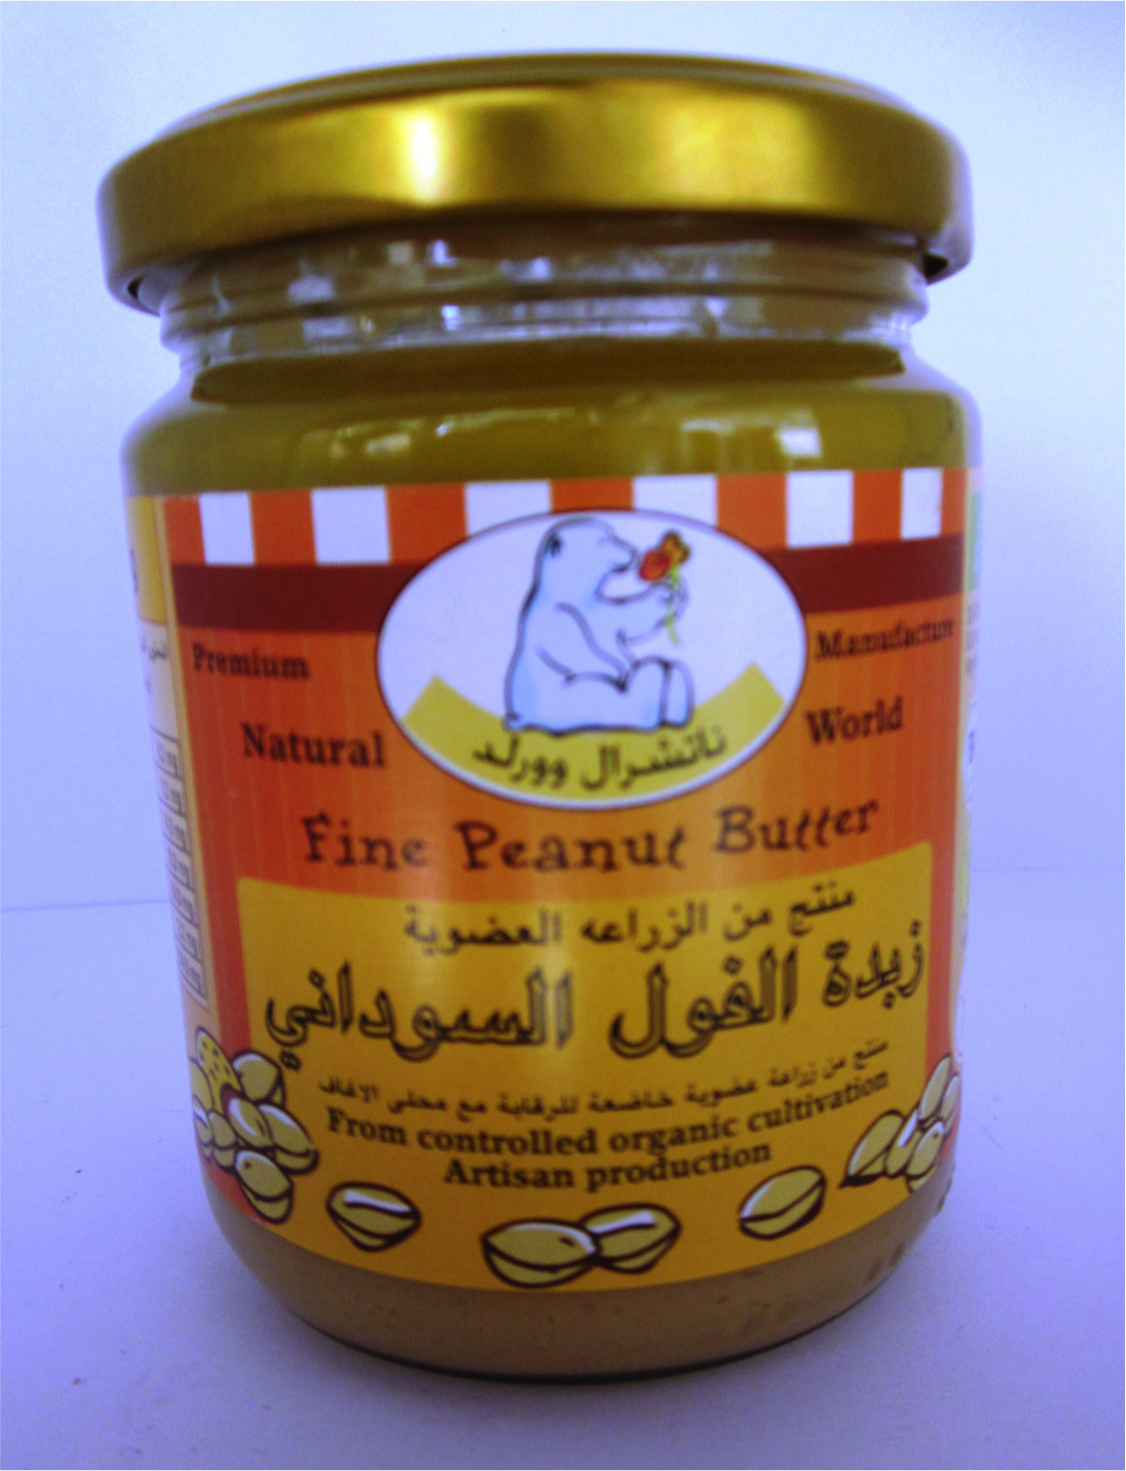 Natural World Fine Peanut Butter - 250g